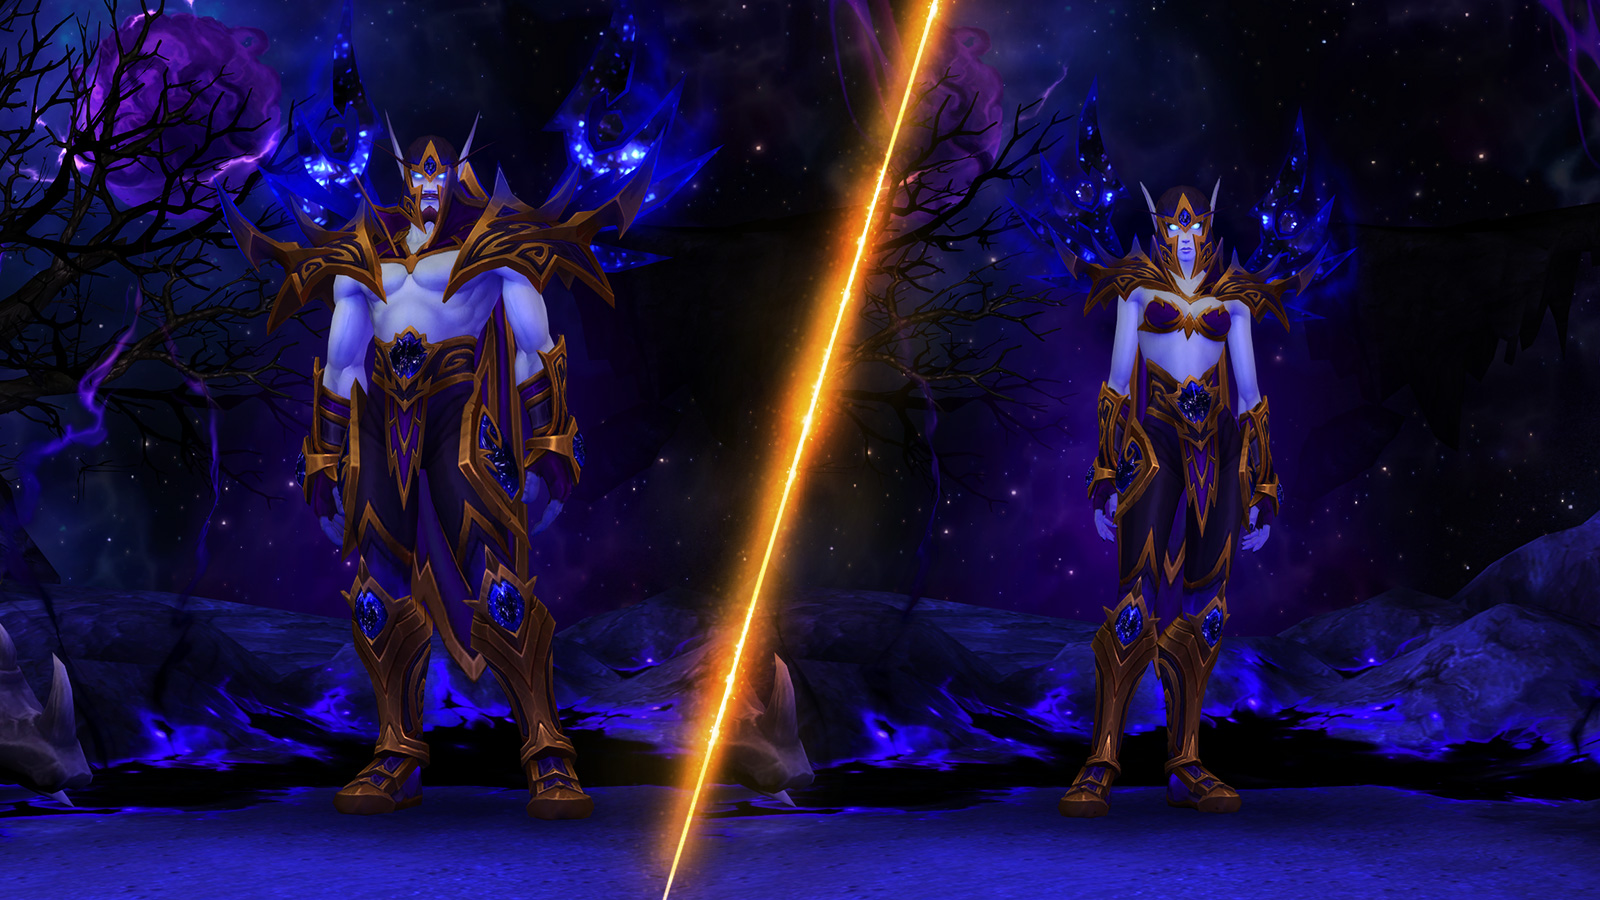 Heritage Armor Wowpedia Your Wiki Guide To The World Of Warcraft Void elf death knight heritage armor unlock. heritage armor wowpedia your wiki